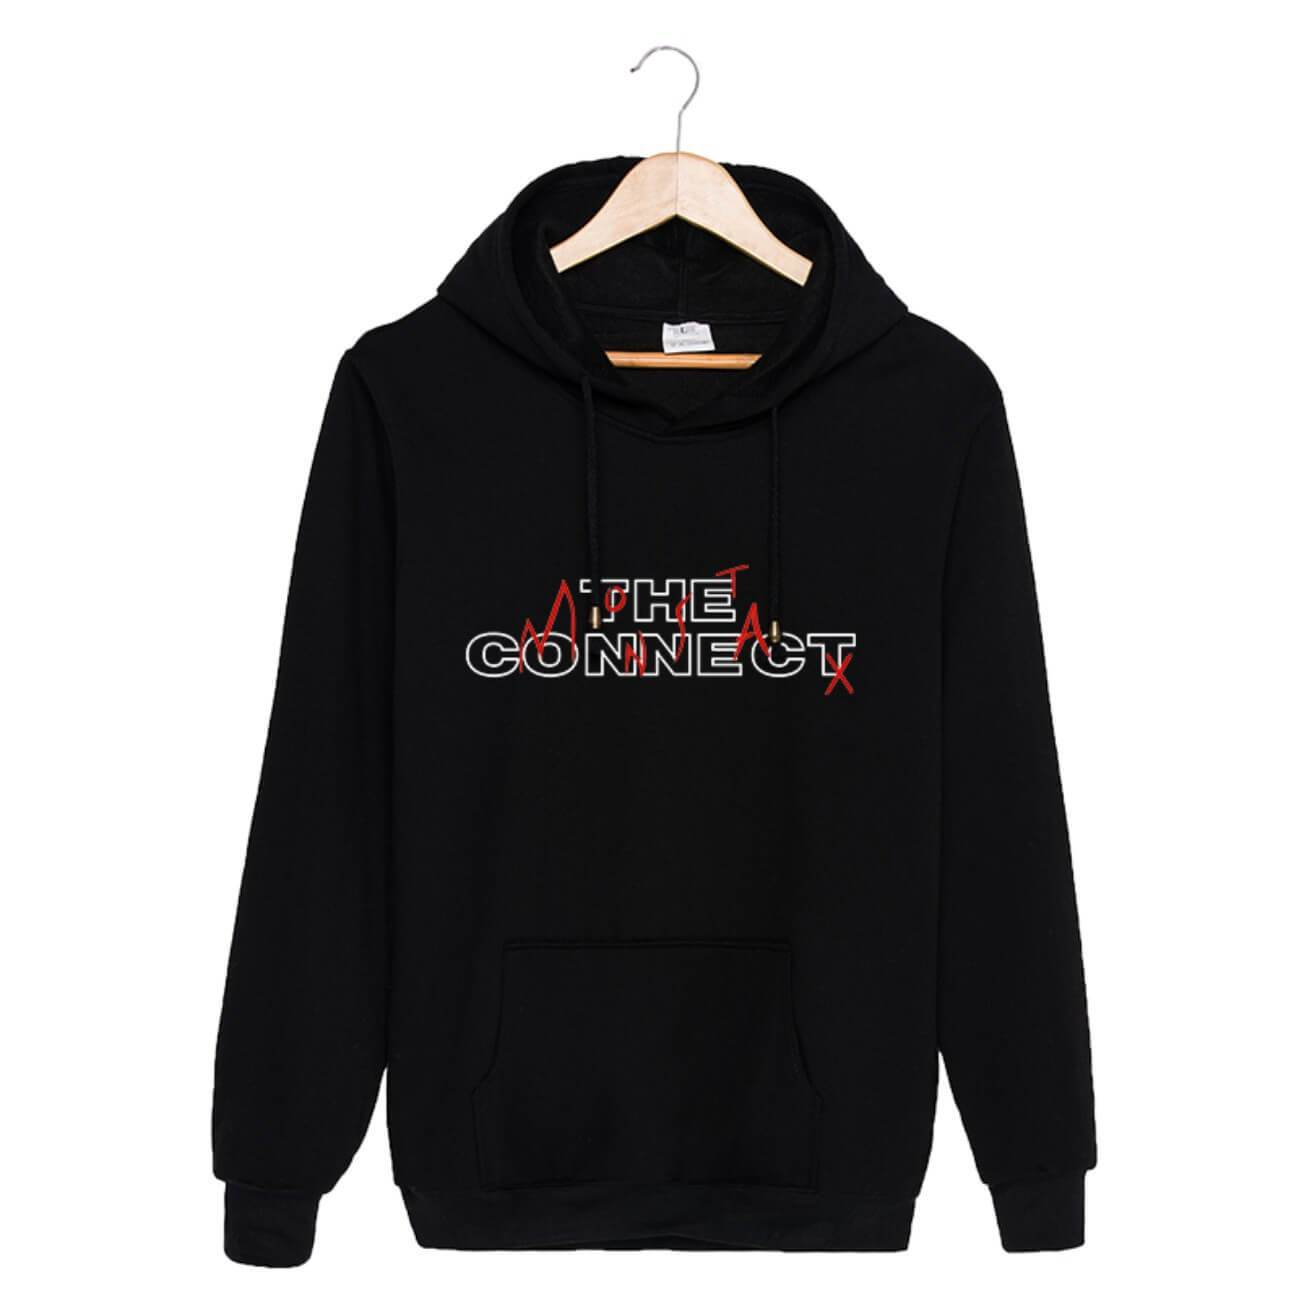 MONSTA X World Tour Concert THE CONNECT Printed Cotton Hoodie